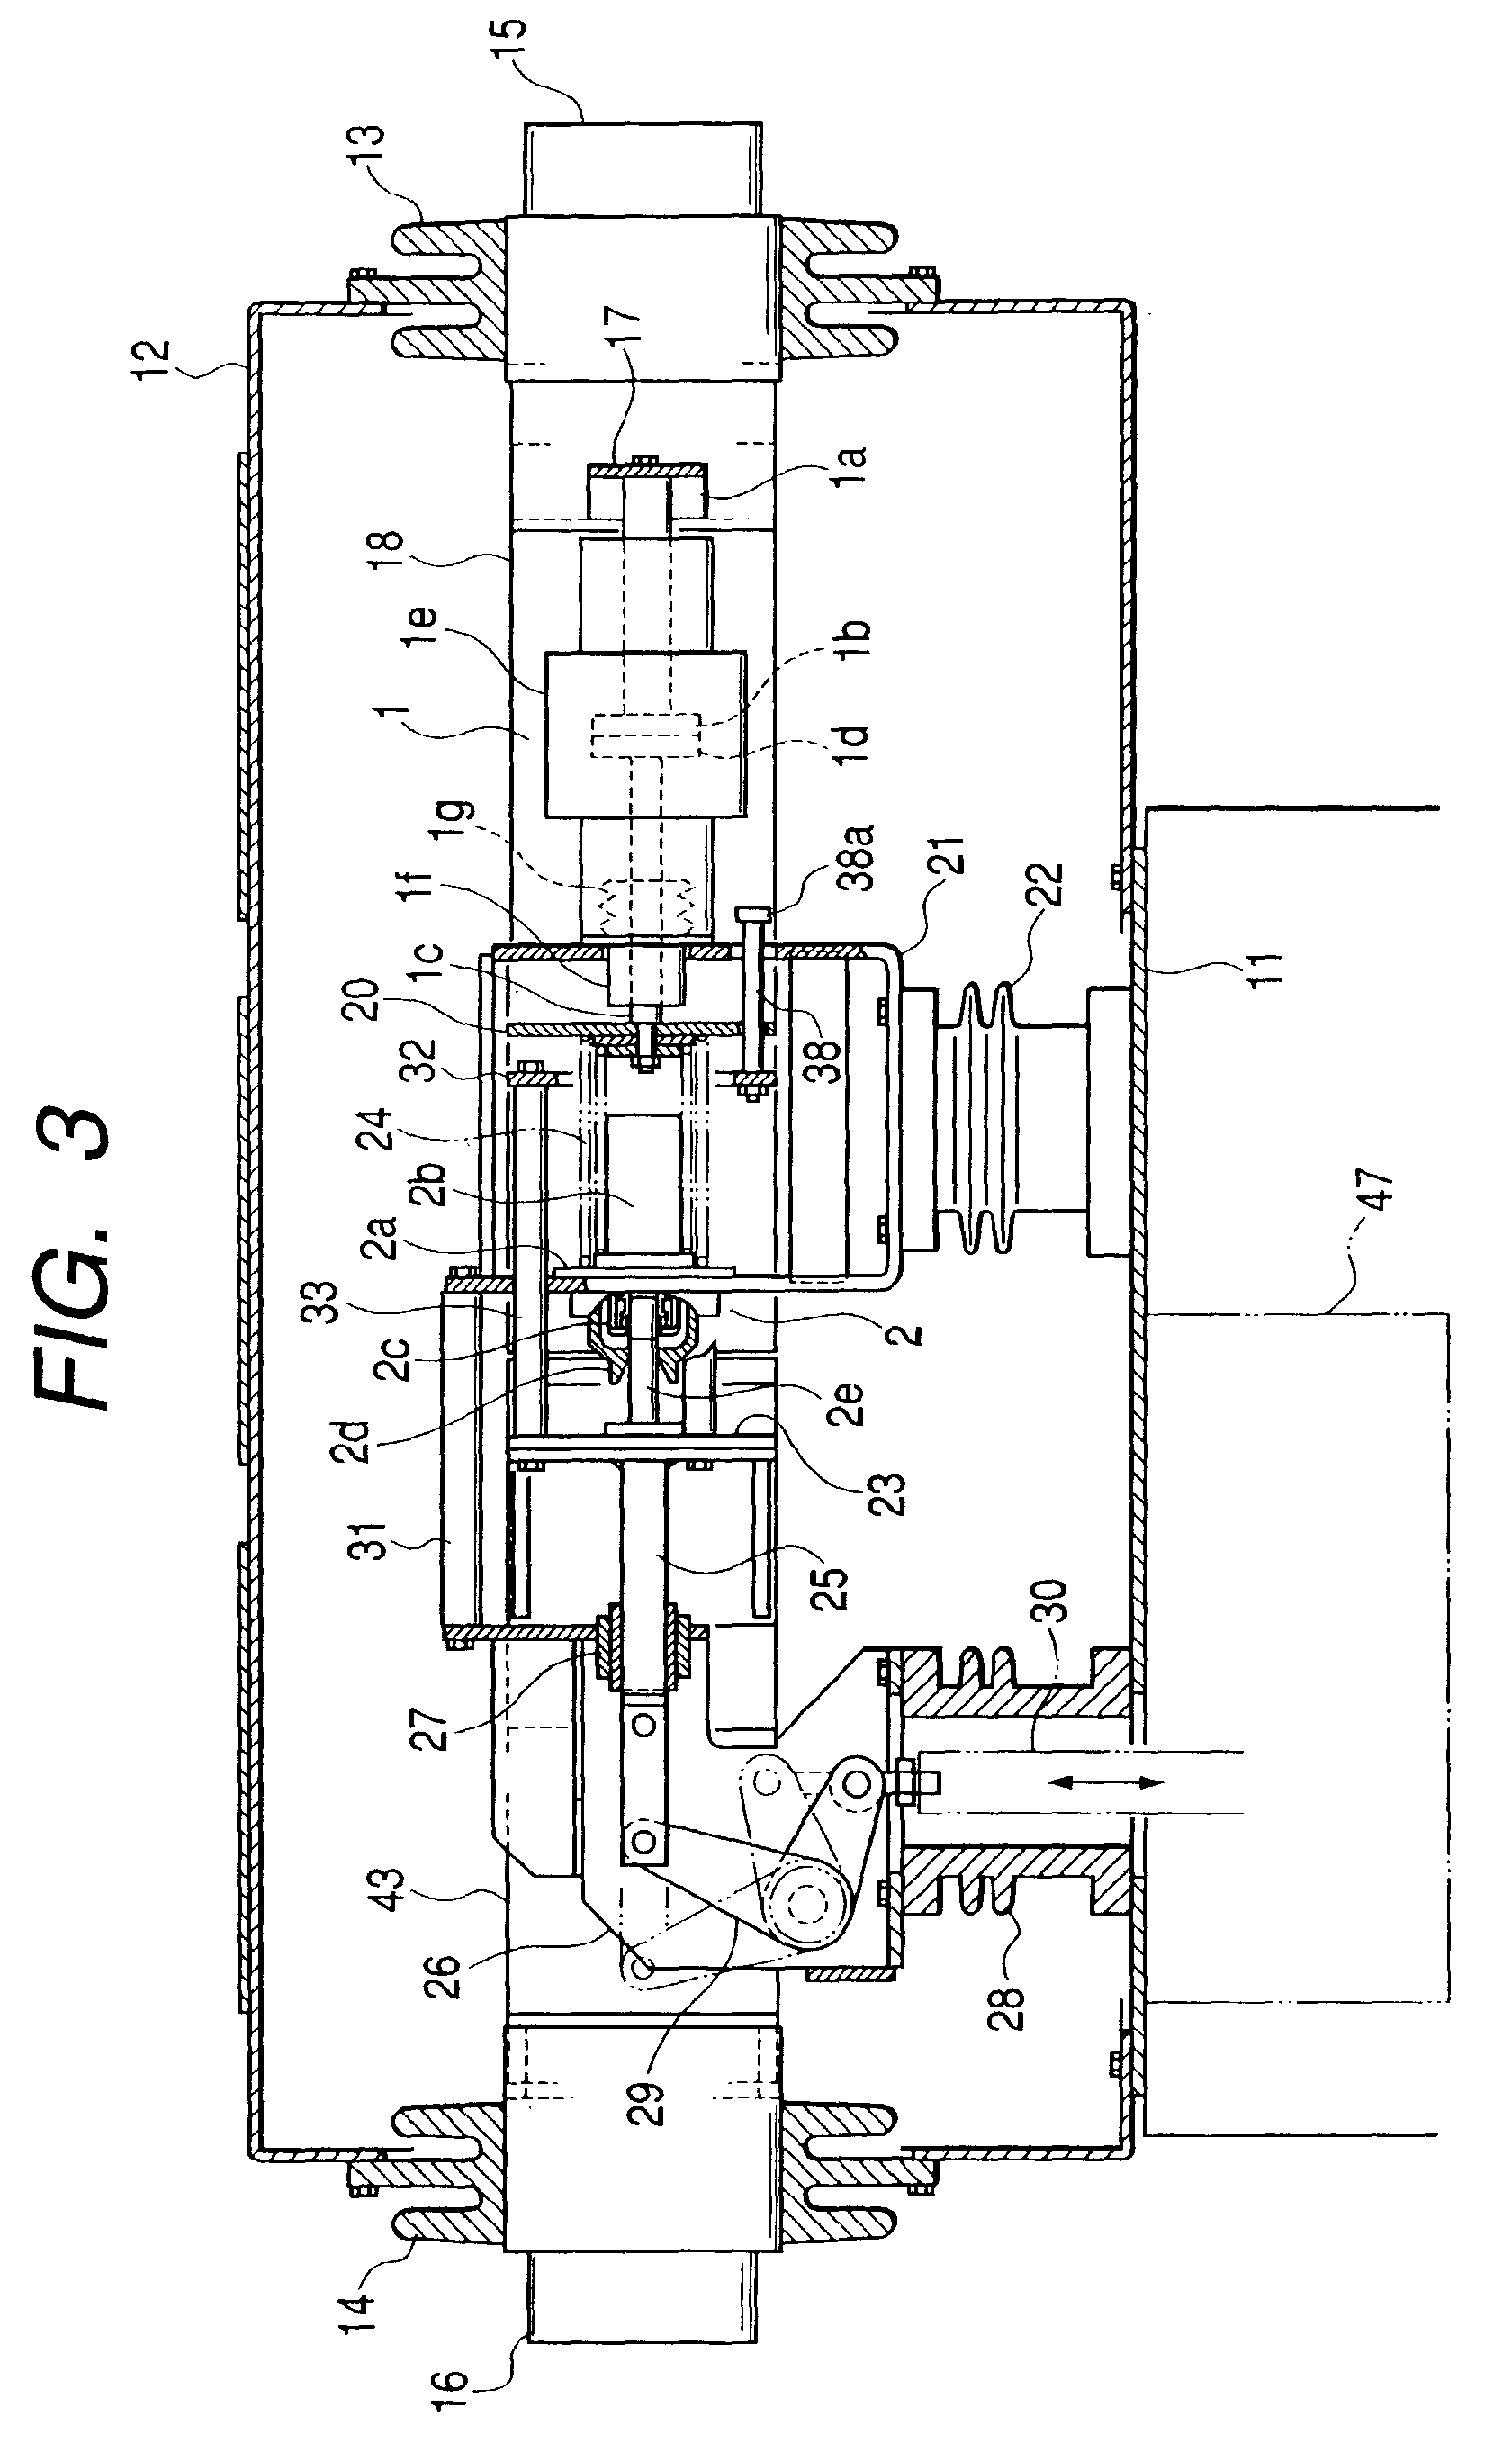 Breaker Schematic Drawing